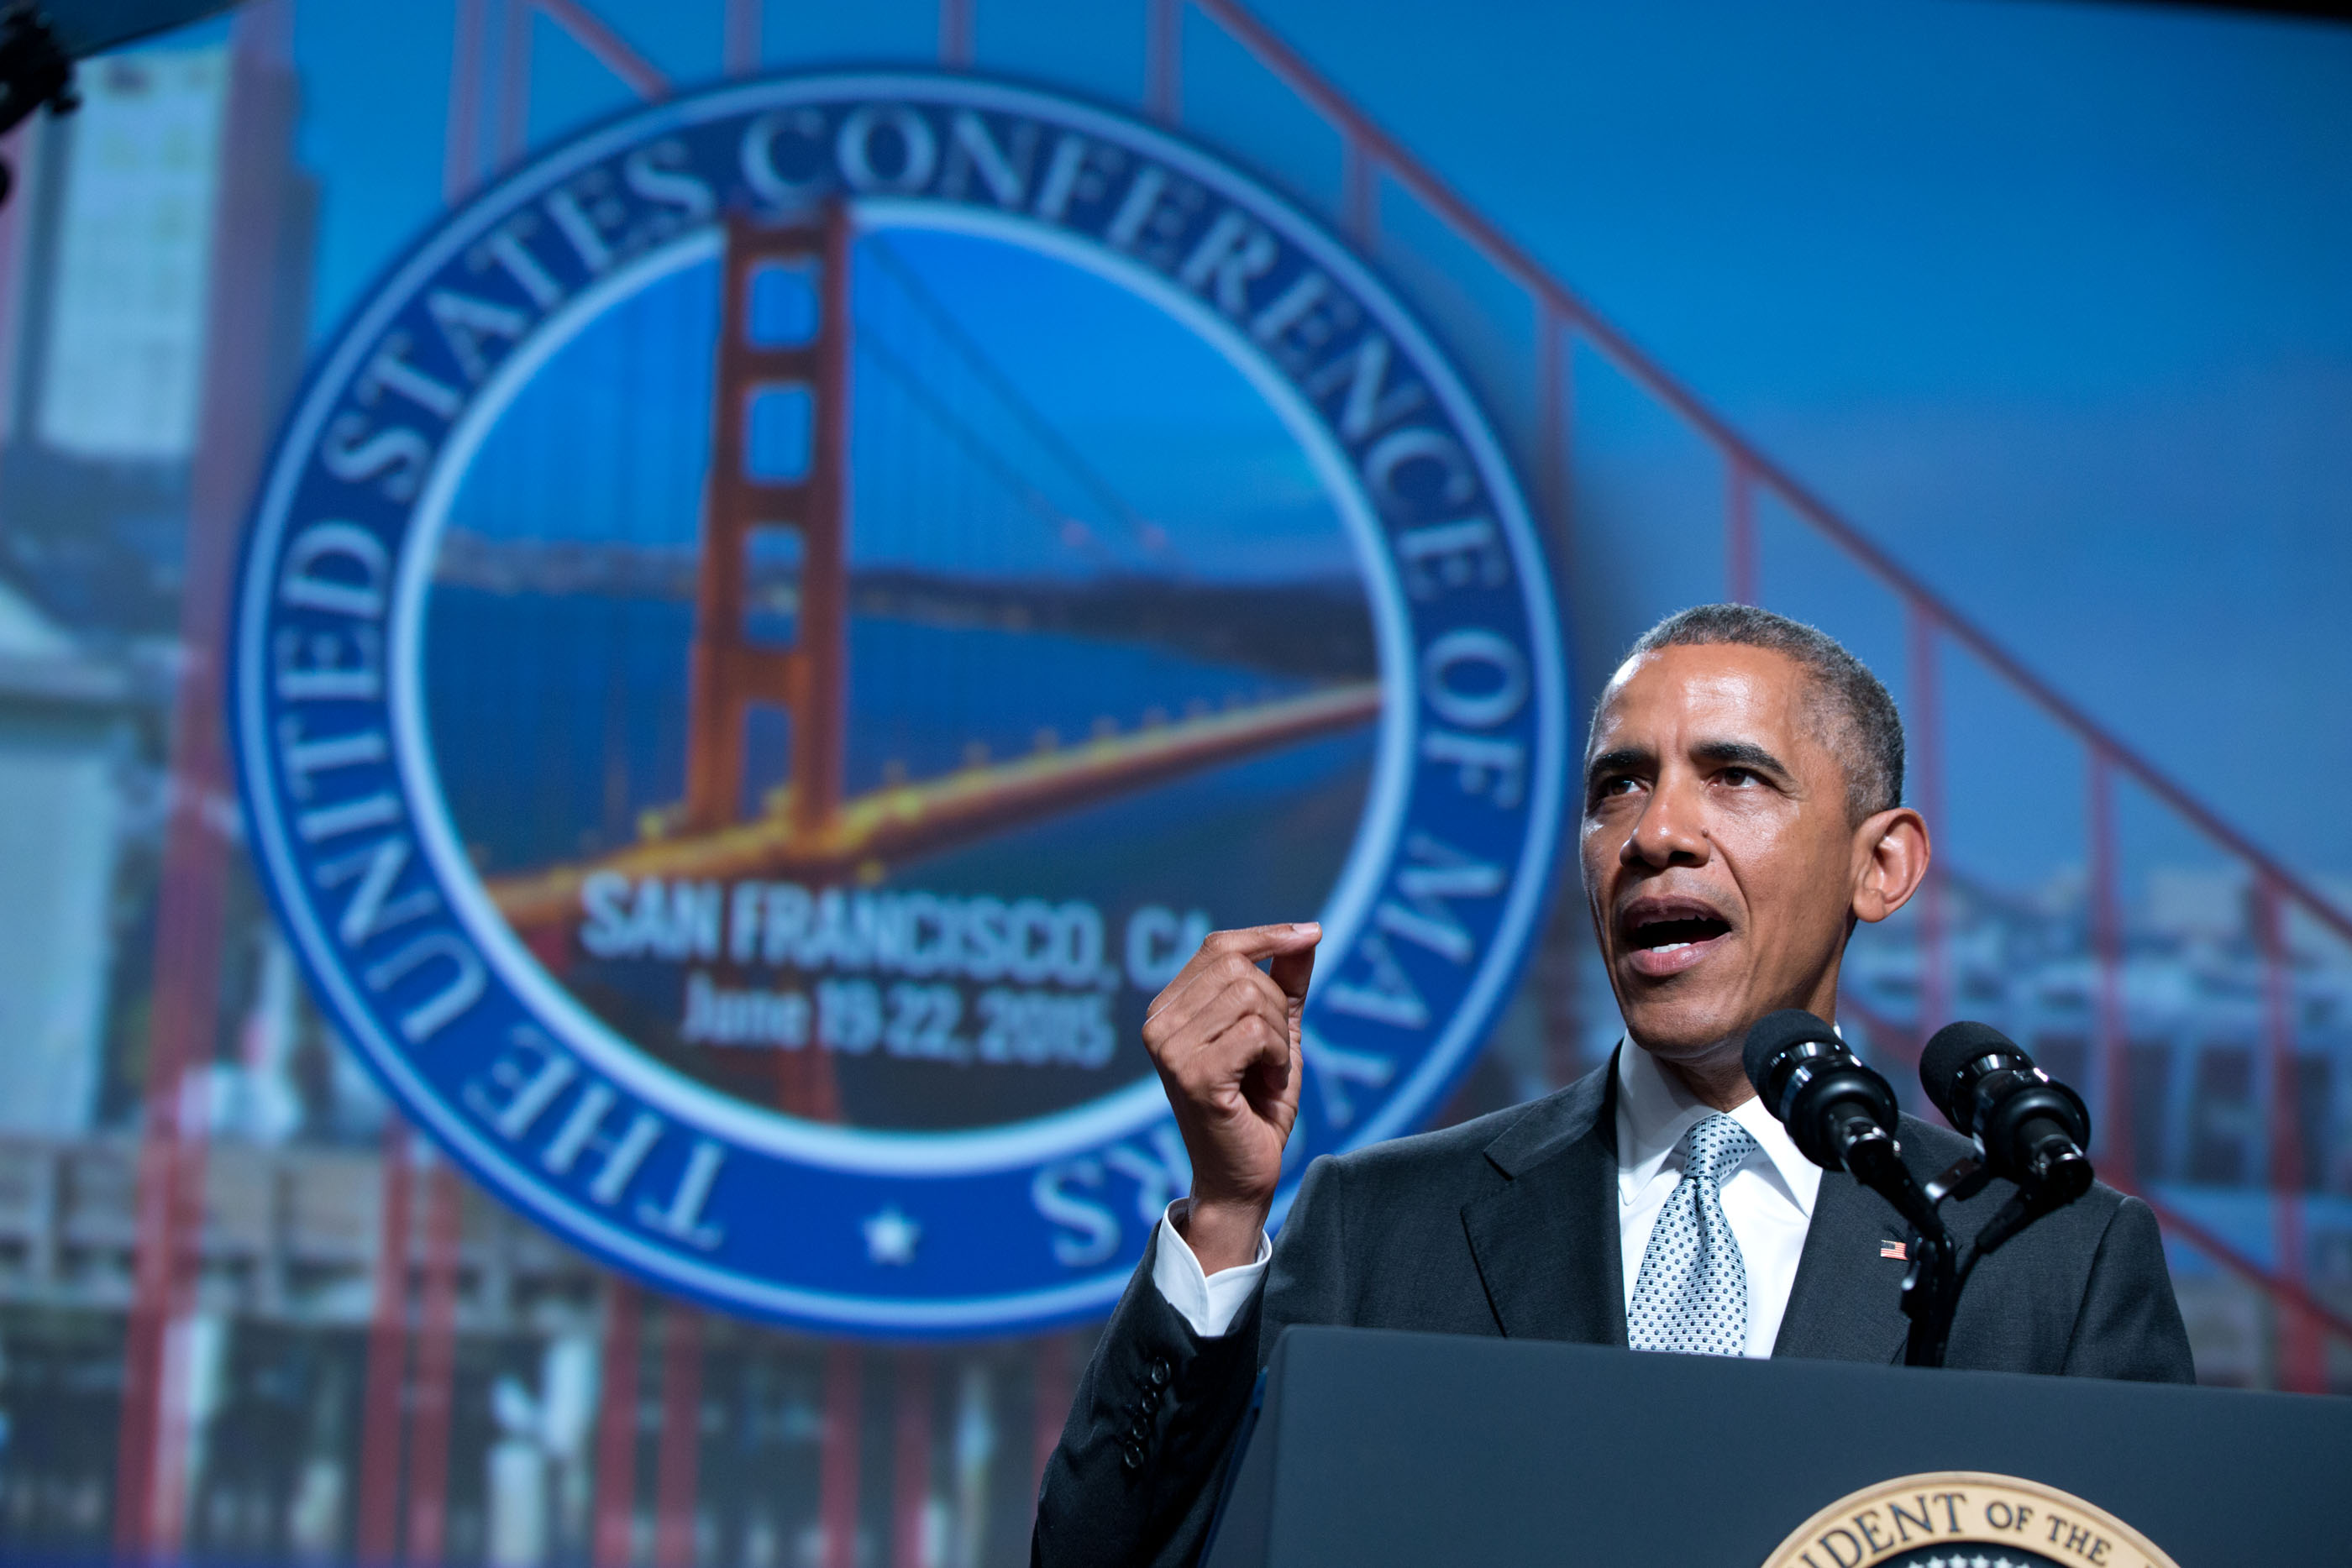 President Obama makes remarks at the U.S. Conference of Mayors, 2015